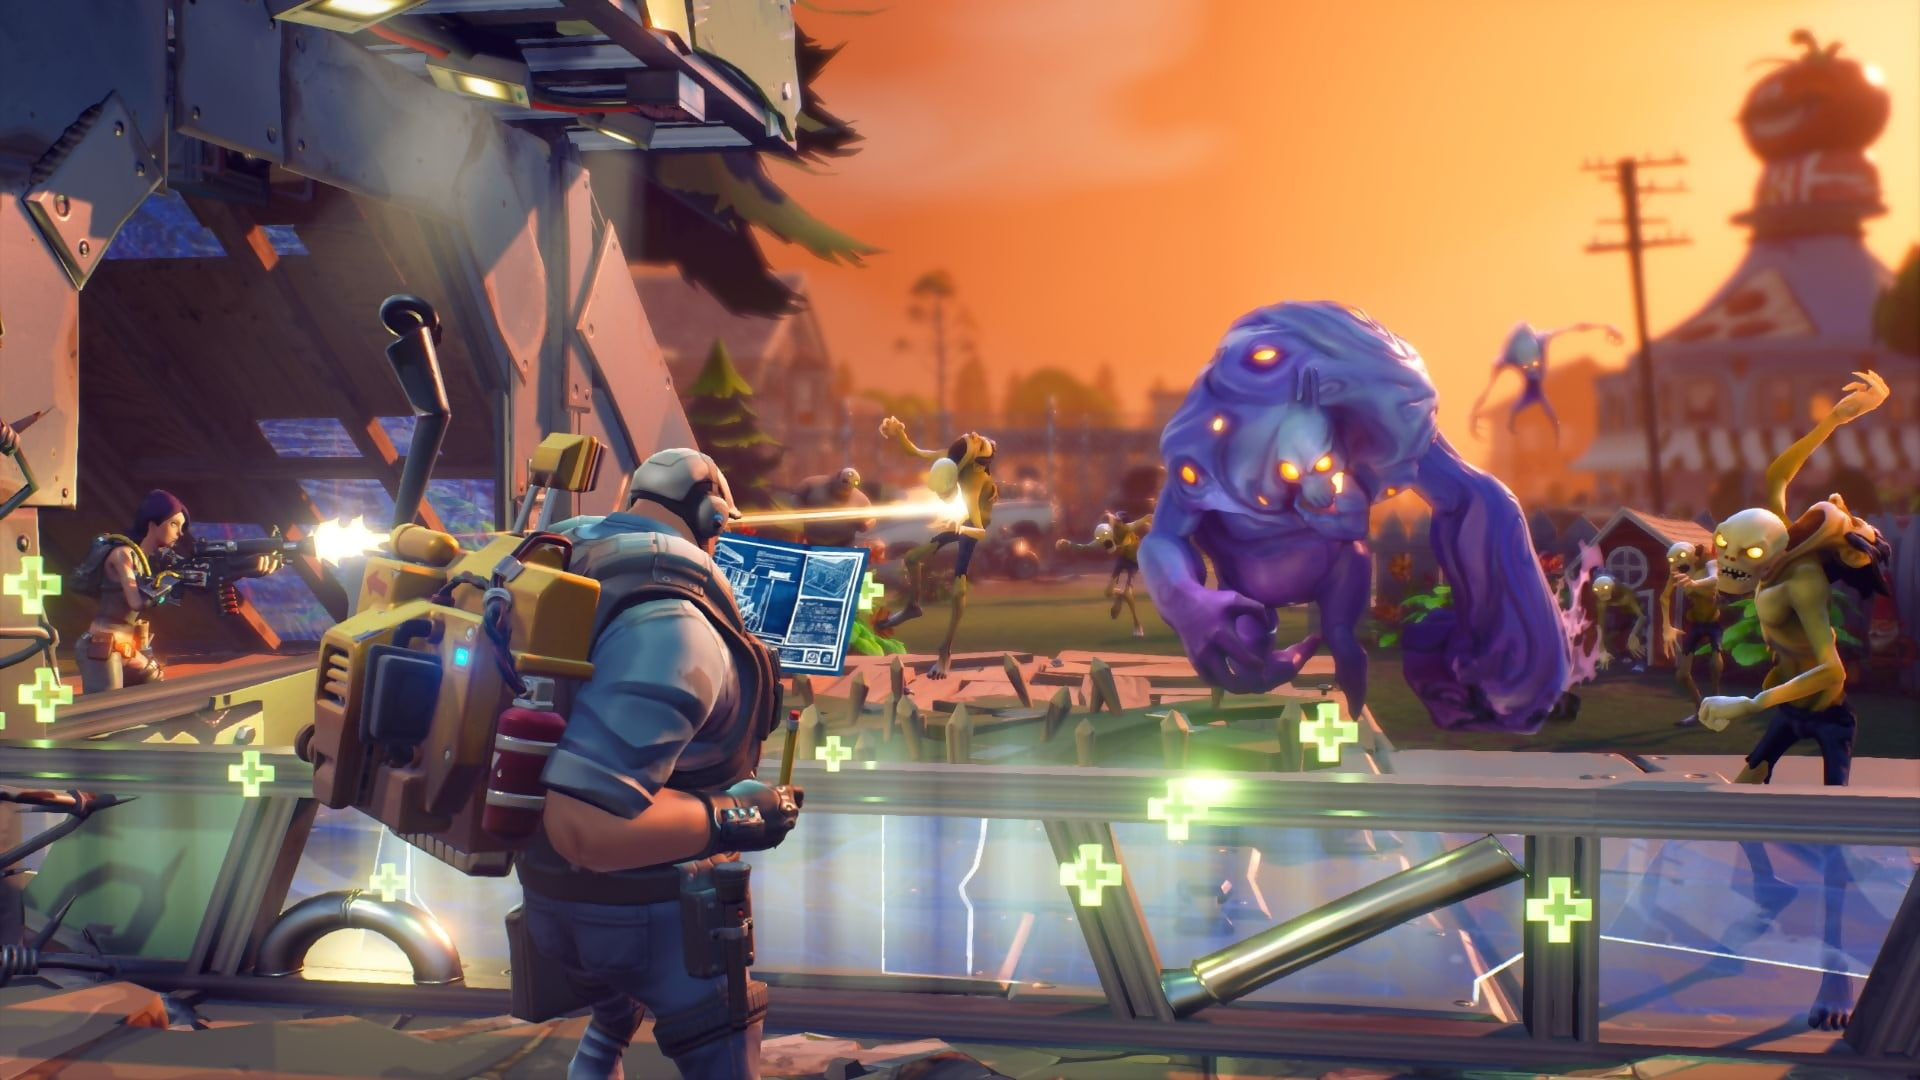 Fortnite Xbox One Gameplay 1920x1080 Wallpaper Teahub Io